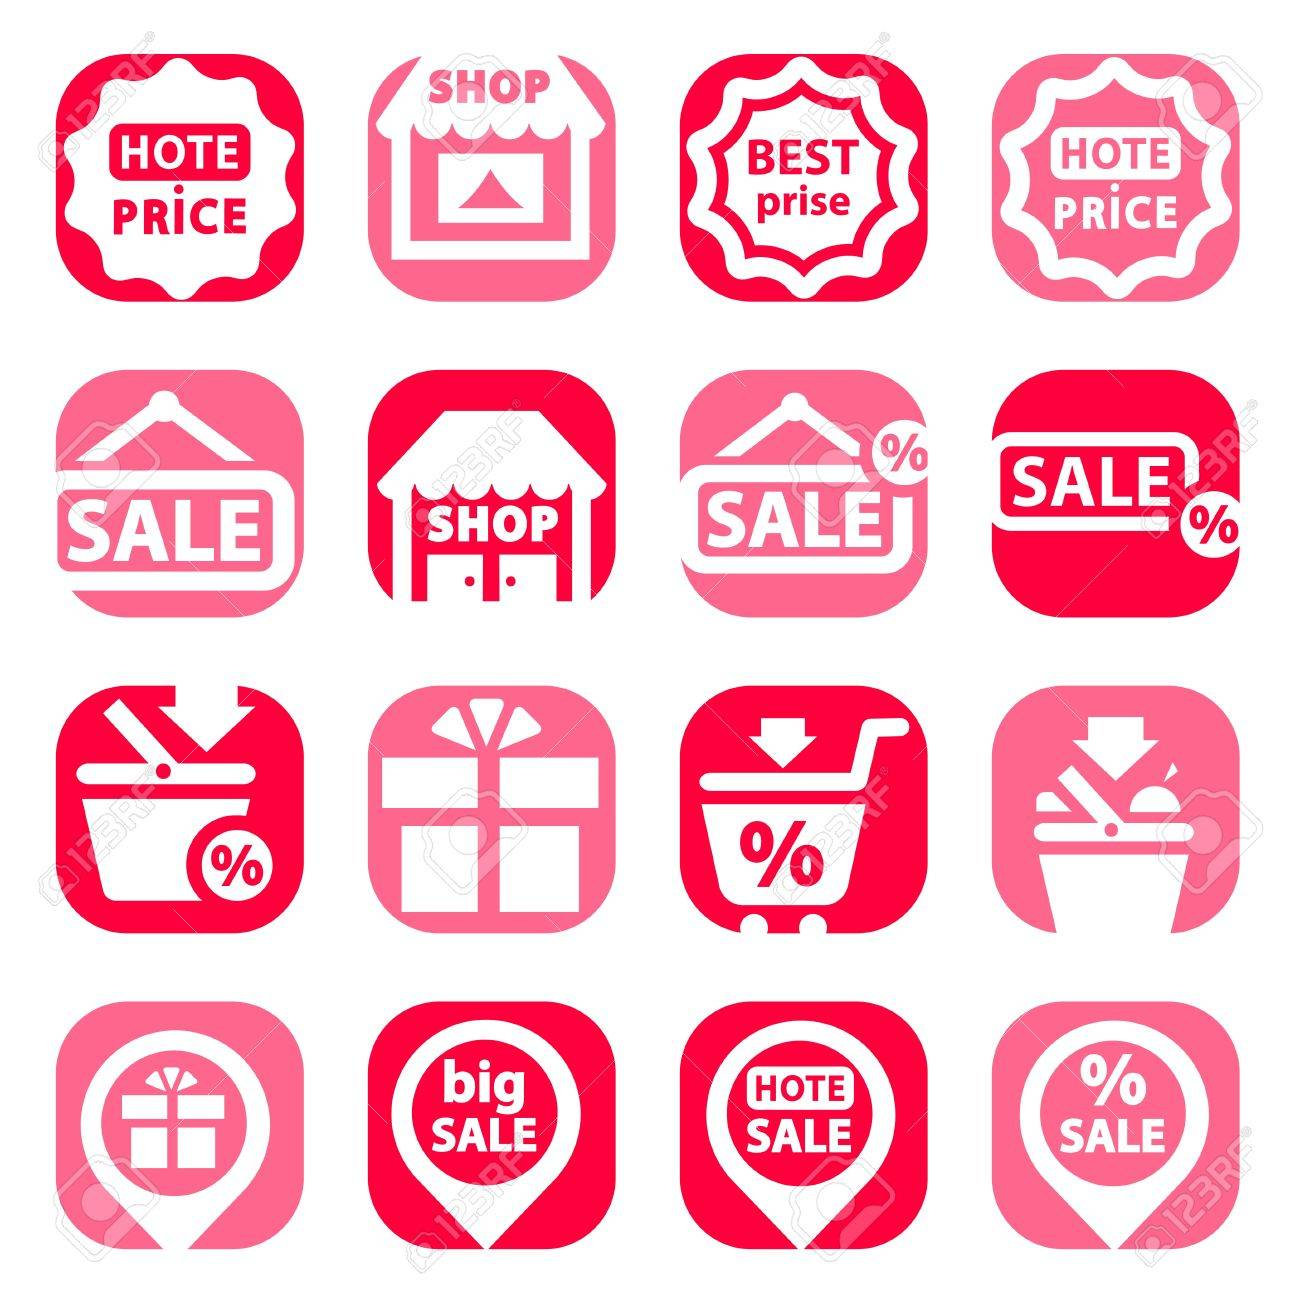 Color Shopping Icons Set Created For Mobile, Web And Applications Stock Vector - 19797338